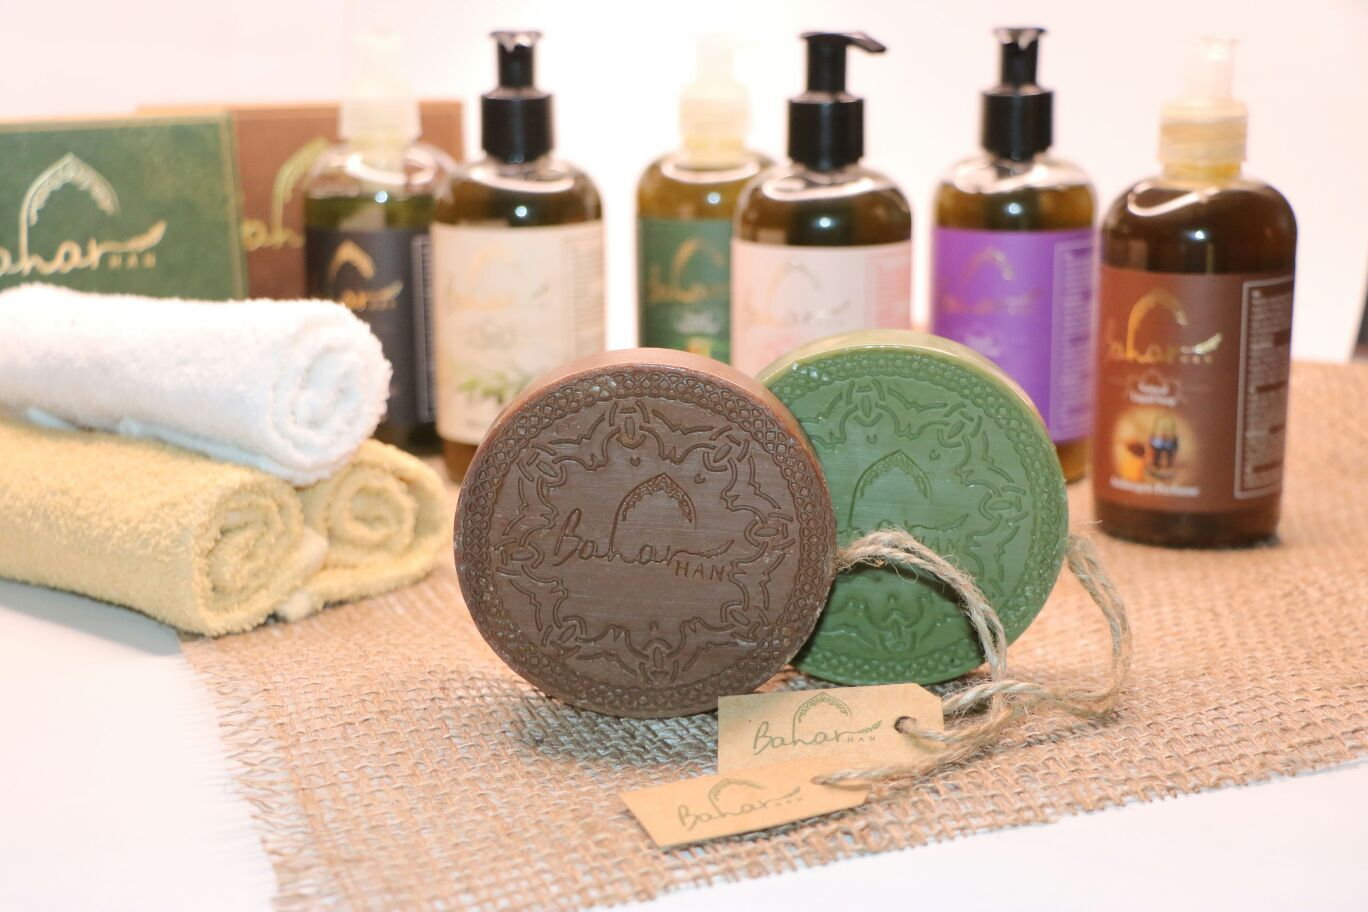 soap lake personals Soap lake natural spa & resort is dedicated to preserving and sharing the natural healing power of soap lake with our guests dating back to the native american tribes that once lived in the area, soap lake was regarded as a sacred body of water with special healing properties.